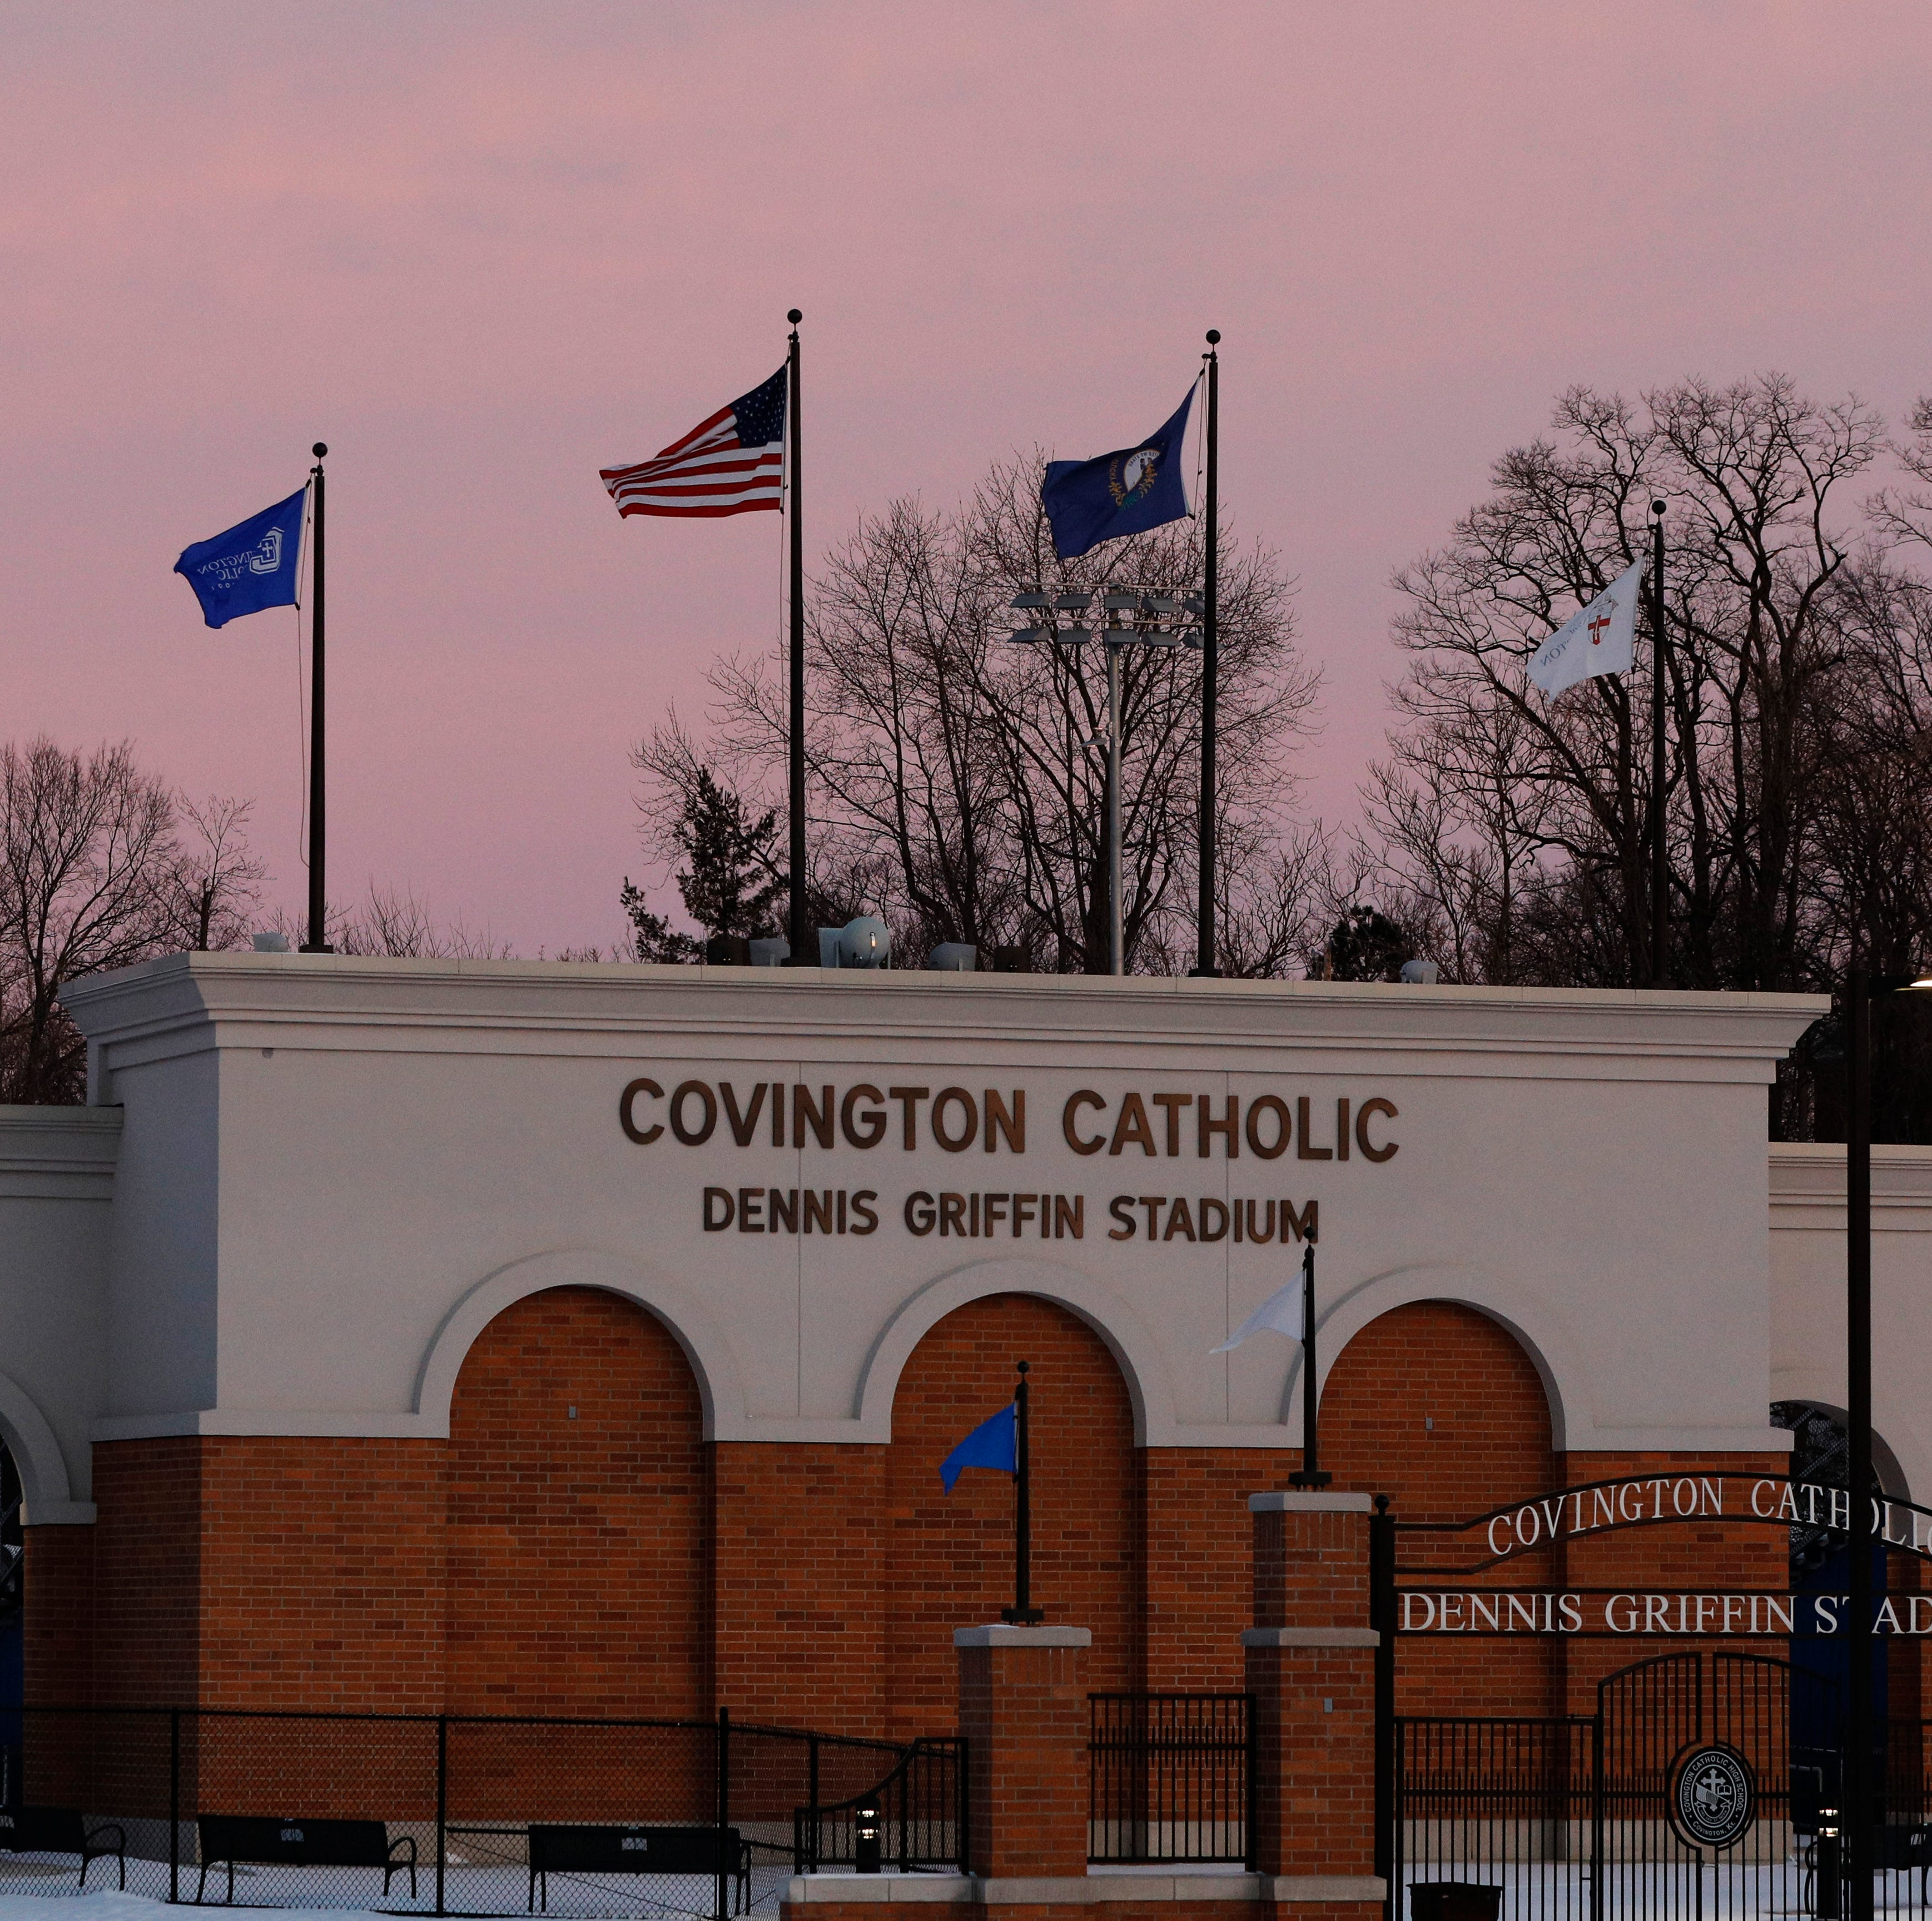 Covington Catholic: How do Cincinnati-area politicians who tweeted early feel now?